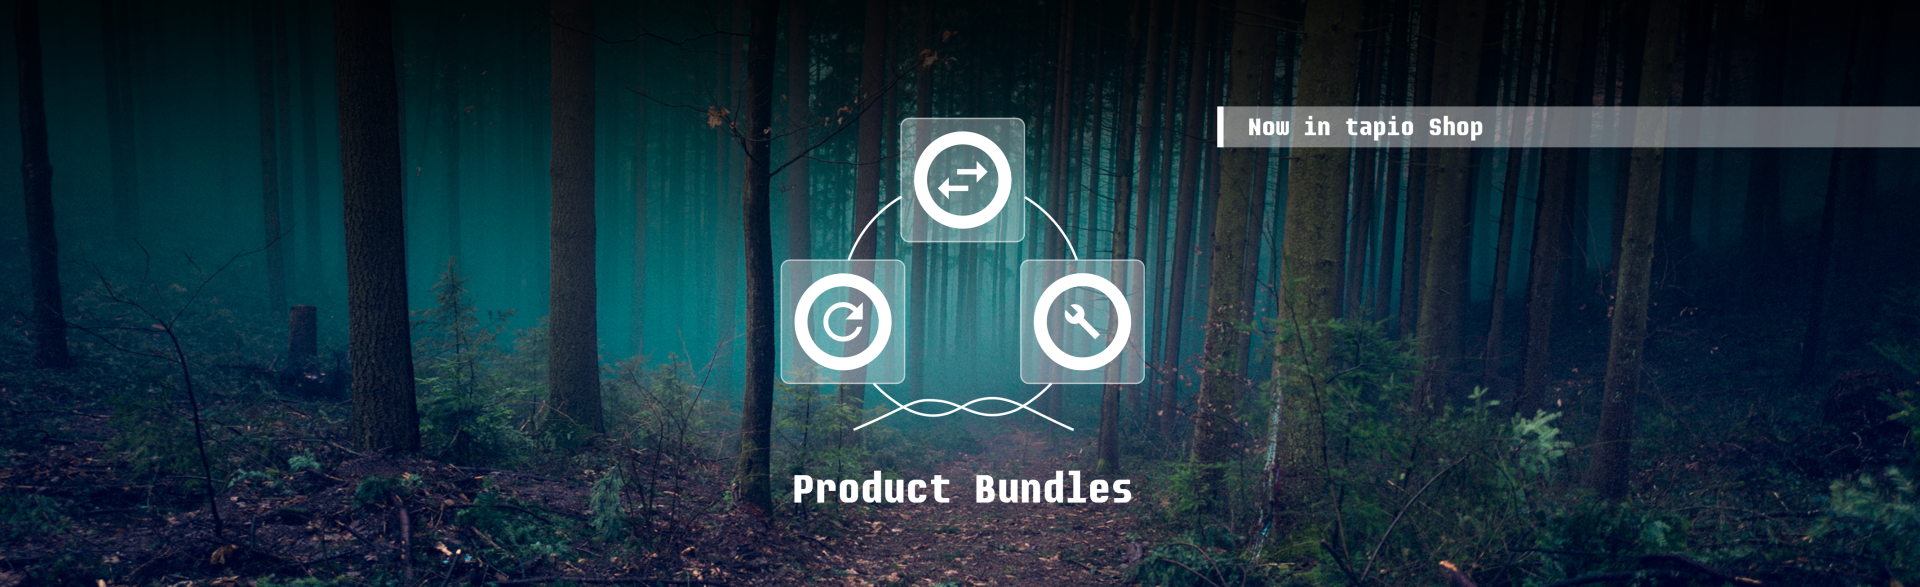 tapio Product Bundles